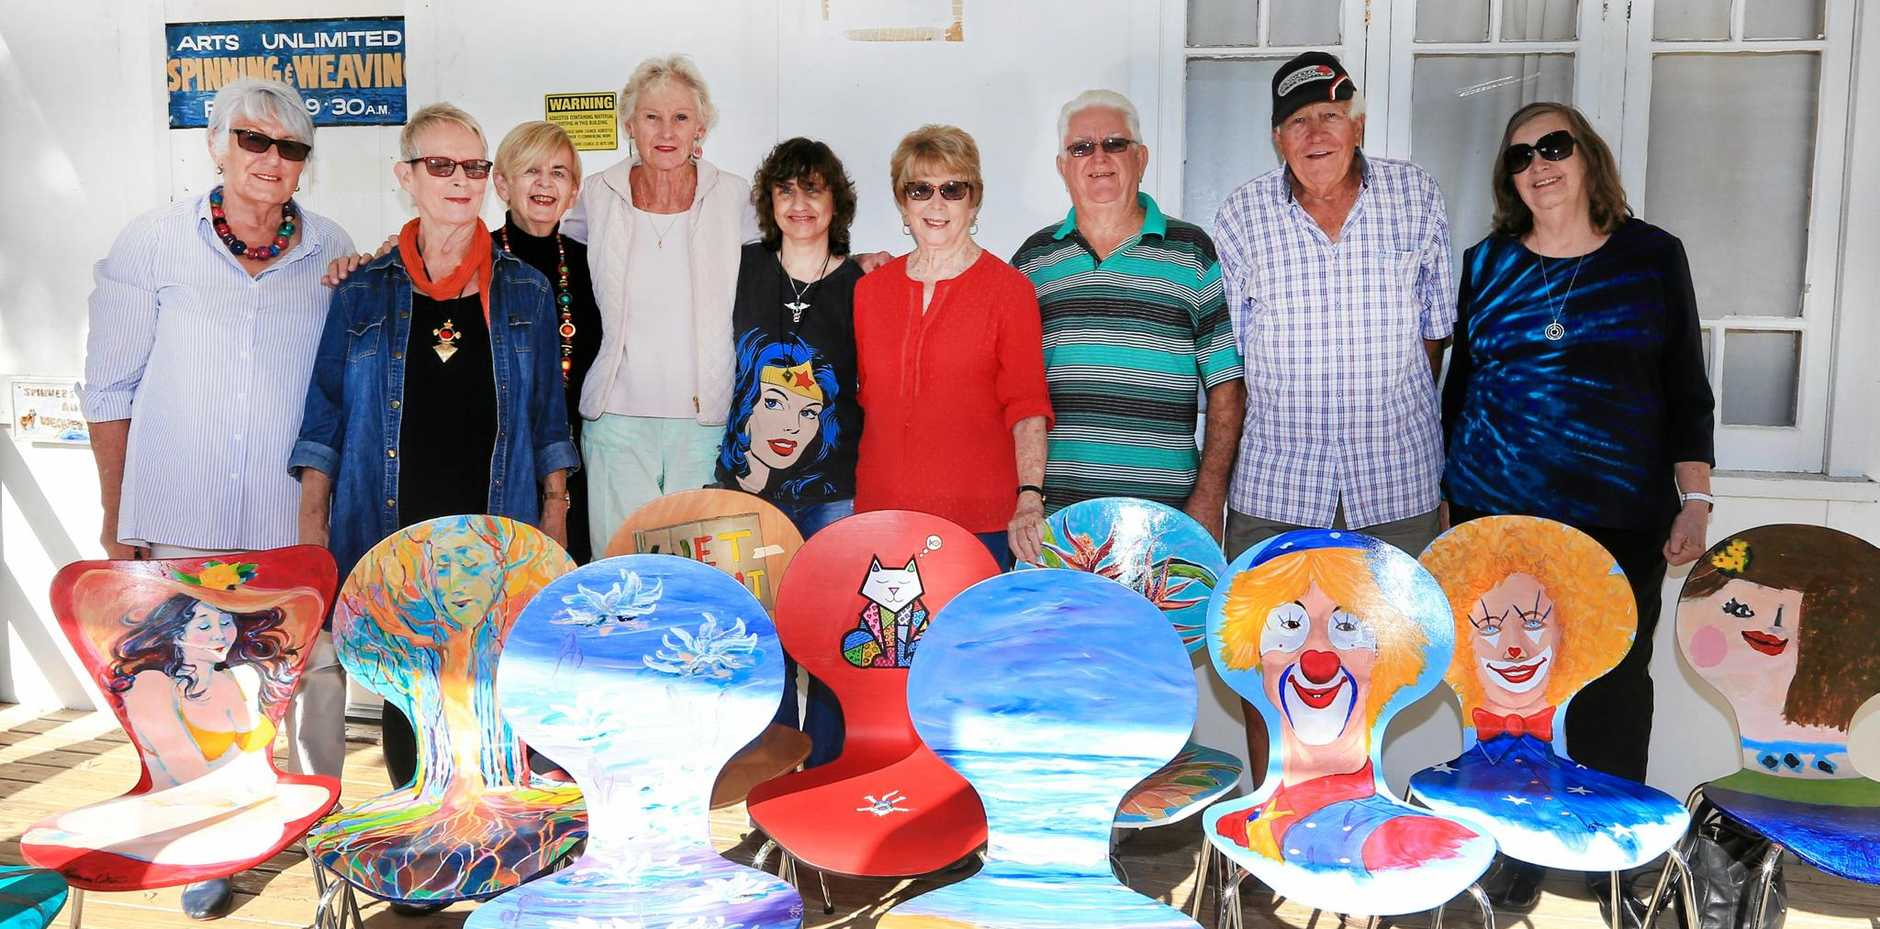 TAKE A SEAT: The Tweed Unlimited Arts members from Pioneer Parade, Banora Point. From left: Lyn McGrath, Rosemary Upton, Joanne Cutler, Marilyn Scotts, Jo Buckley, Bev McNamarra, Robert Stephen, Bruce Moore and Bev Hutchinson.